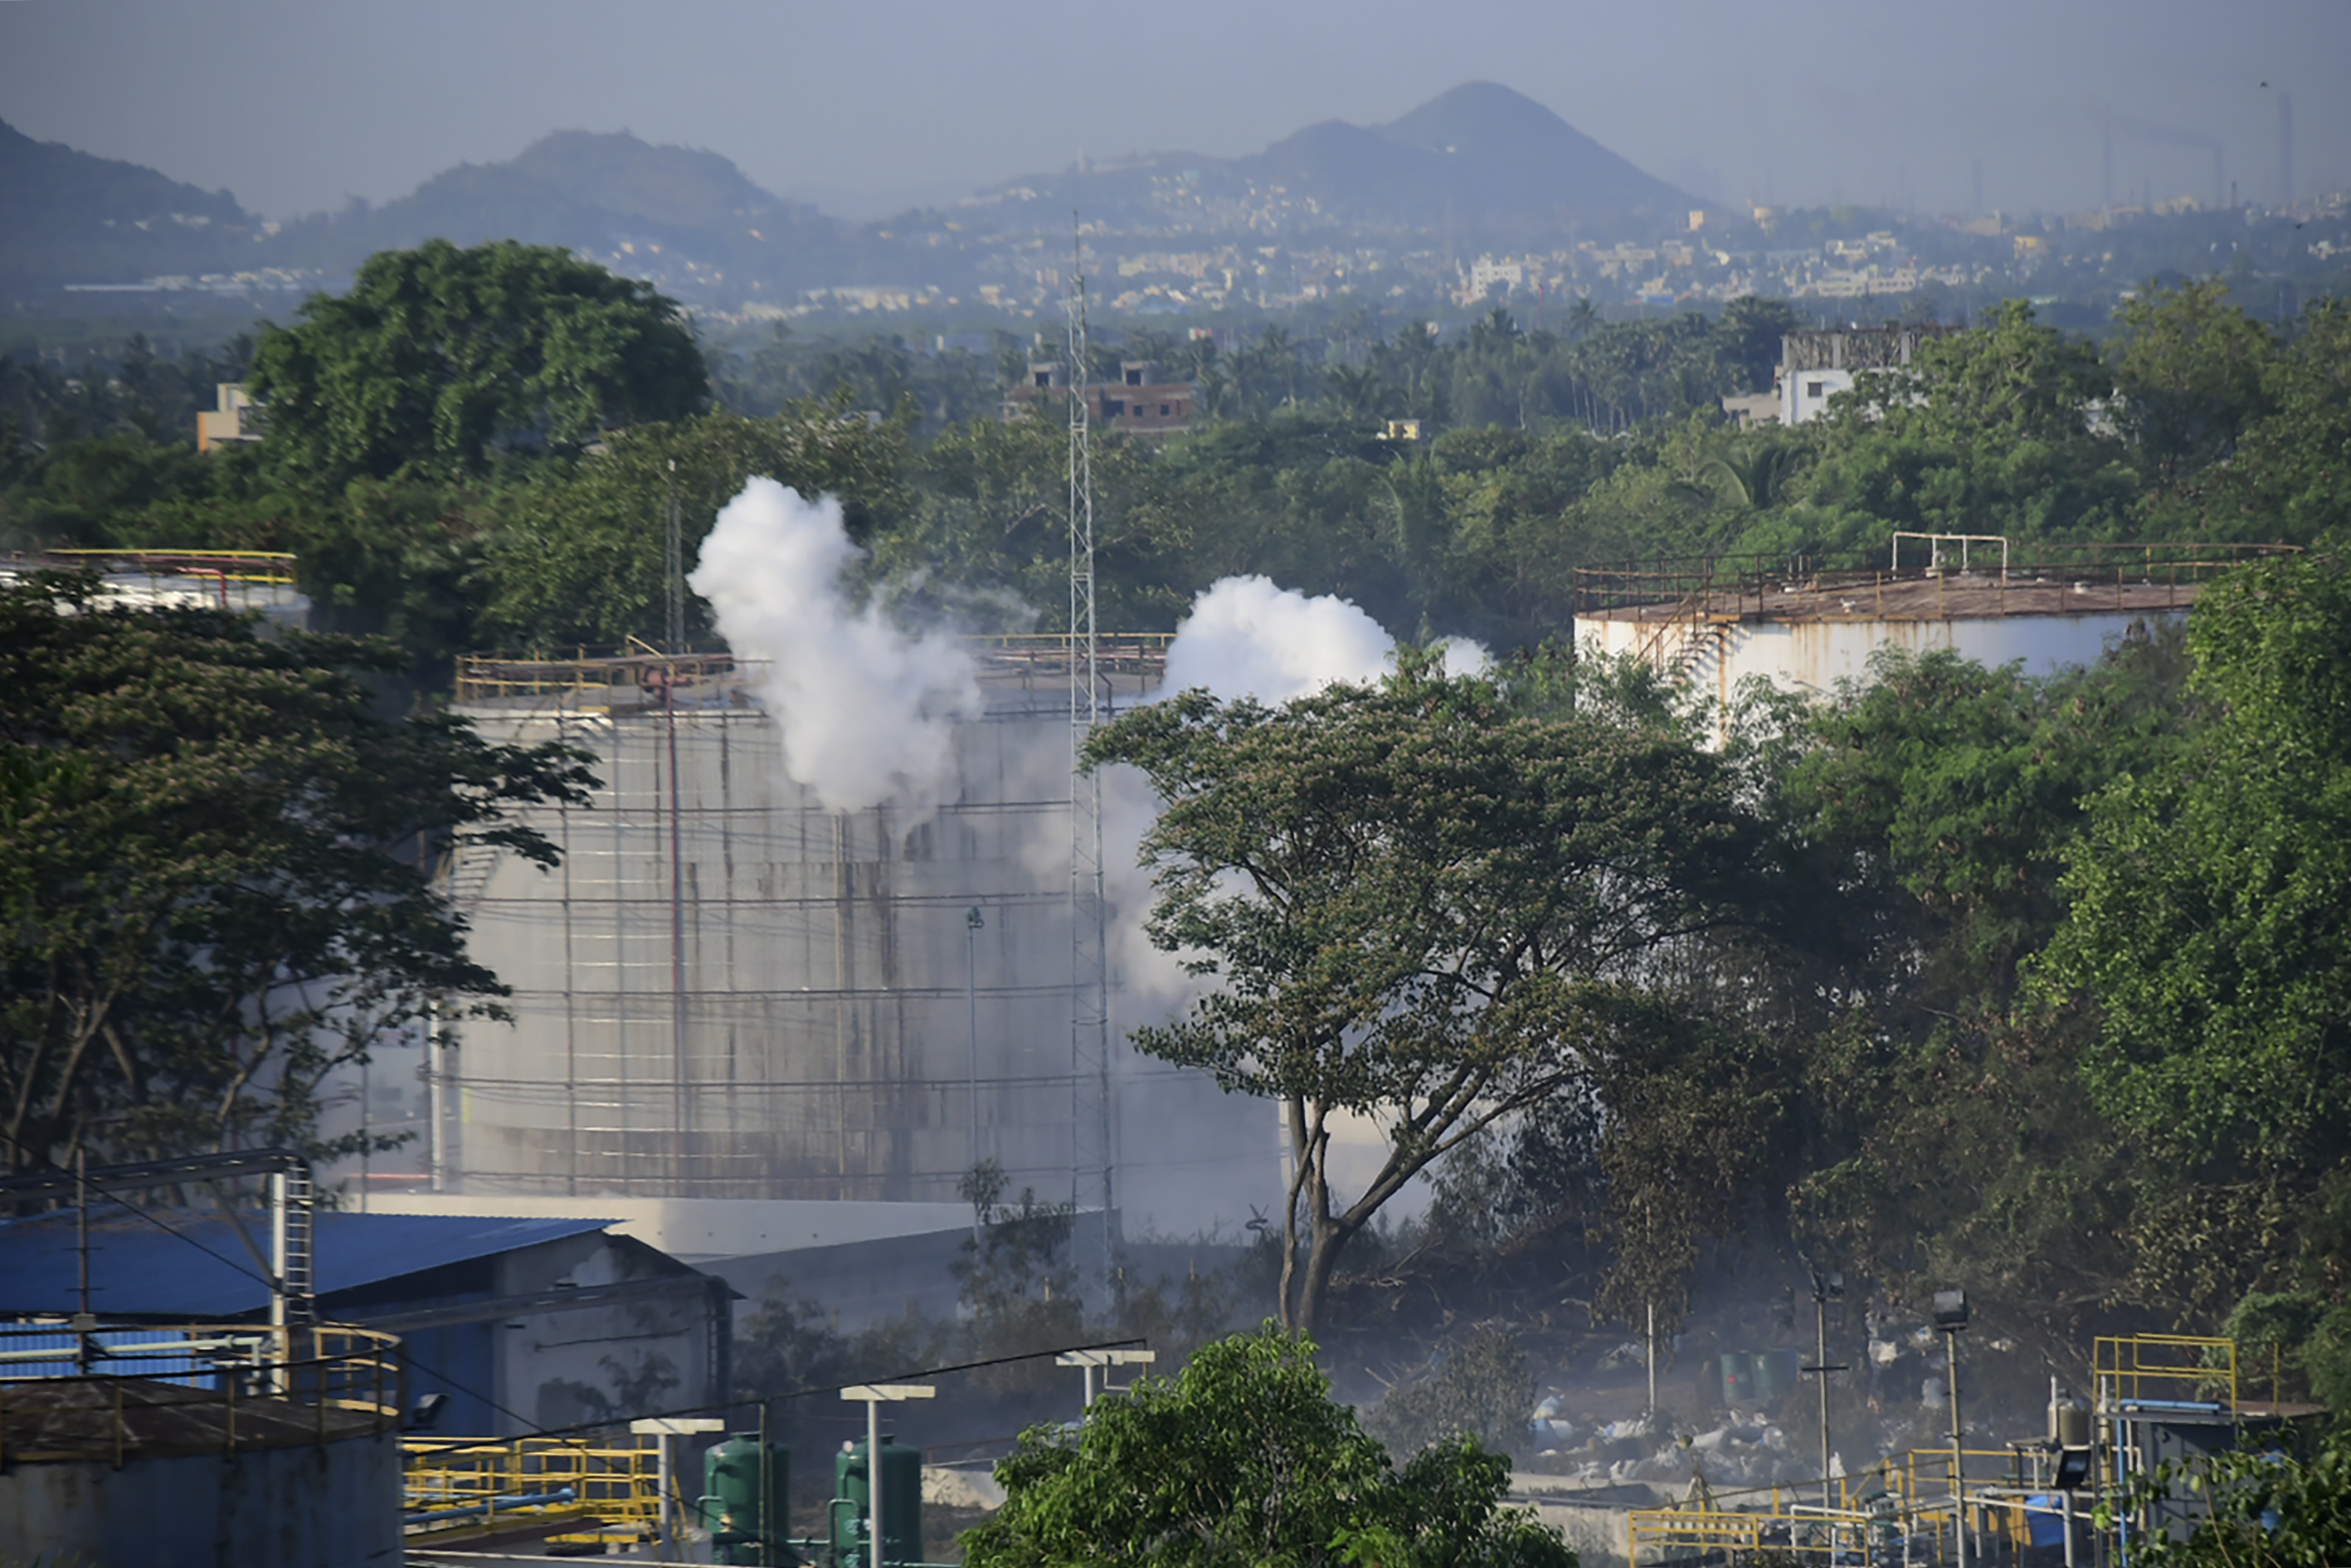 Smoke rises from LG Polymers plant, the site of a chemical gas leakage, in Vishakhapatnam, India, Thursday, May 7, 2020. Photo: AP